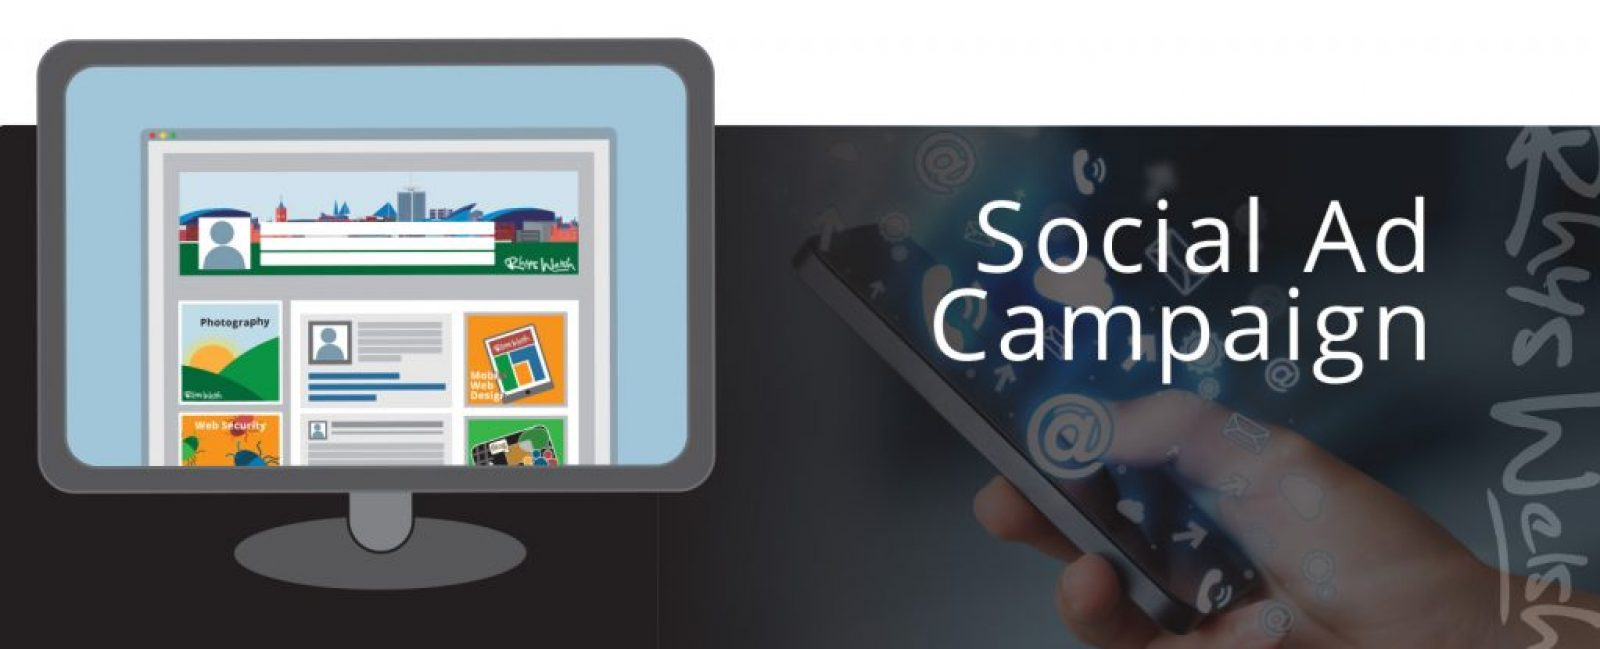 Social-Ad-Campaign-for-websites-cardiff